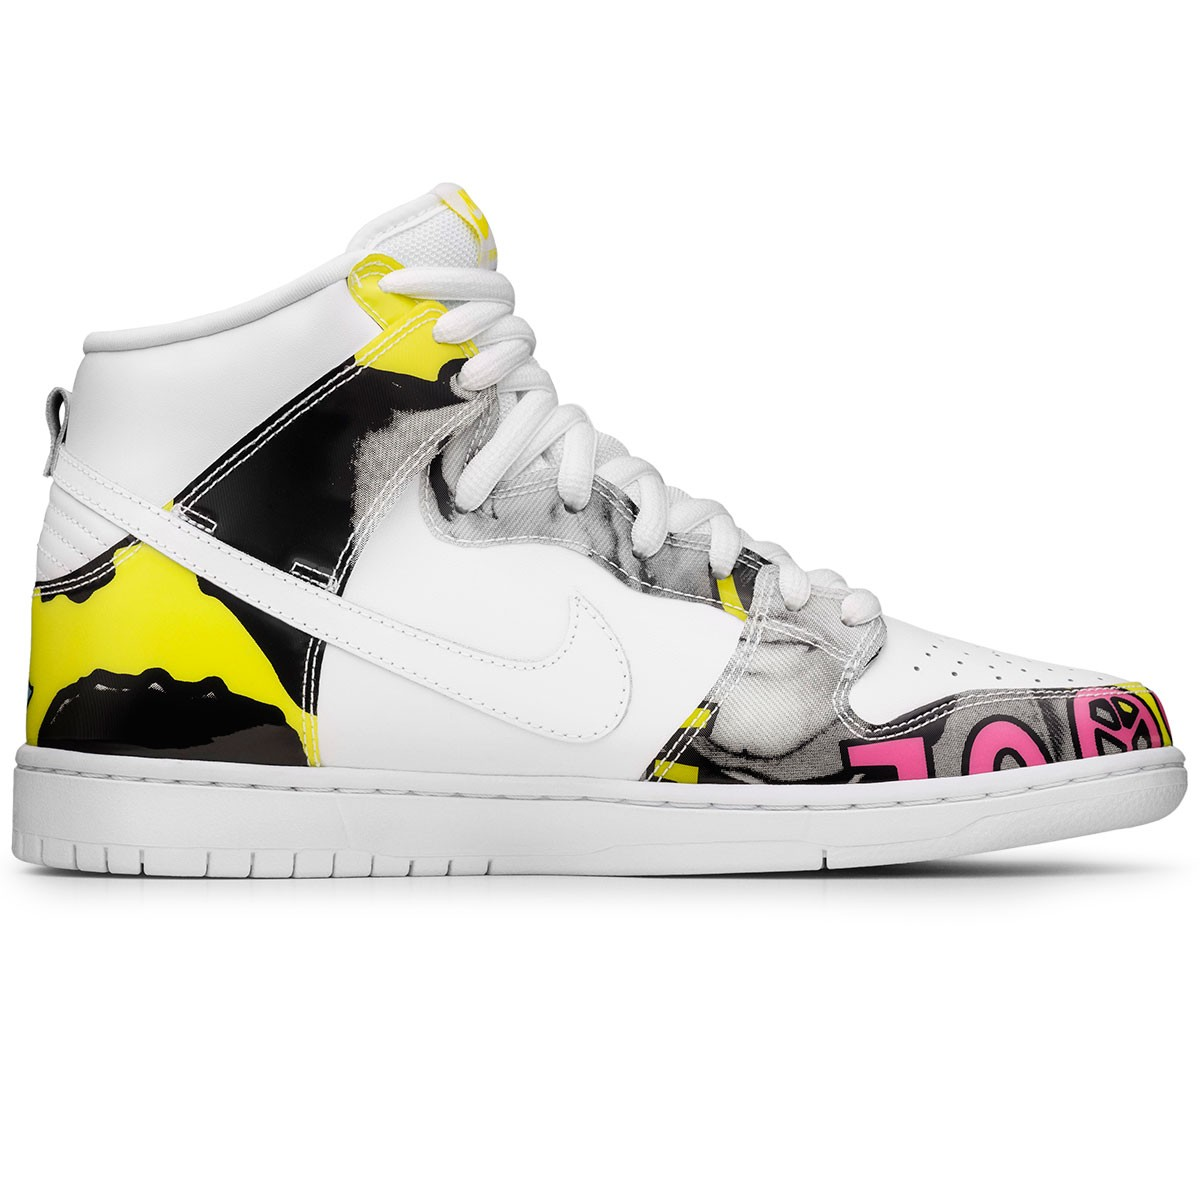 Firefly High Tops Shoes